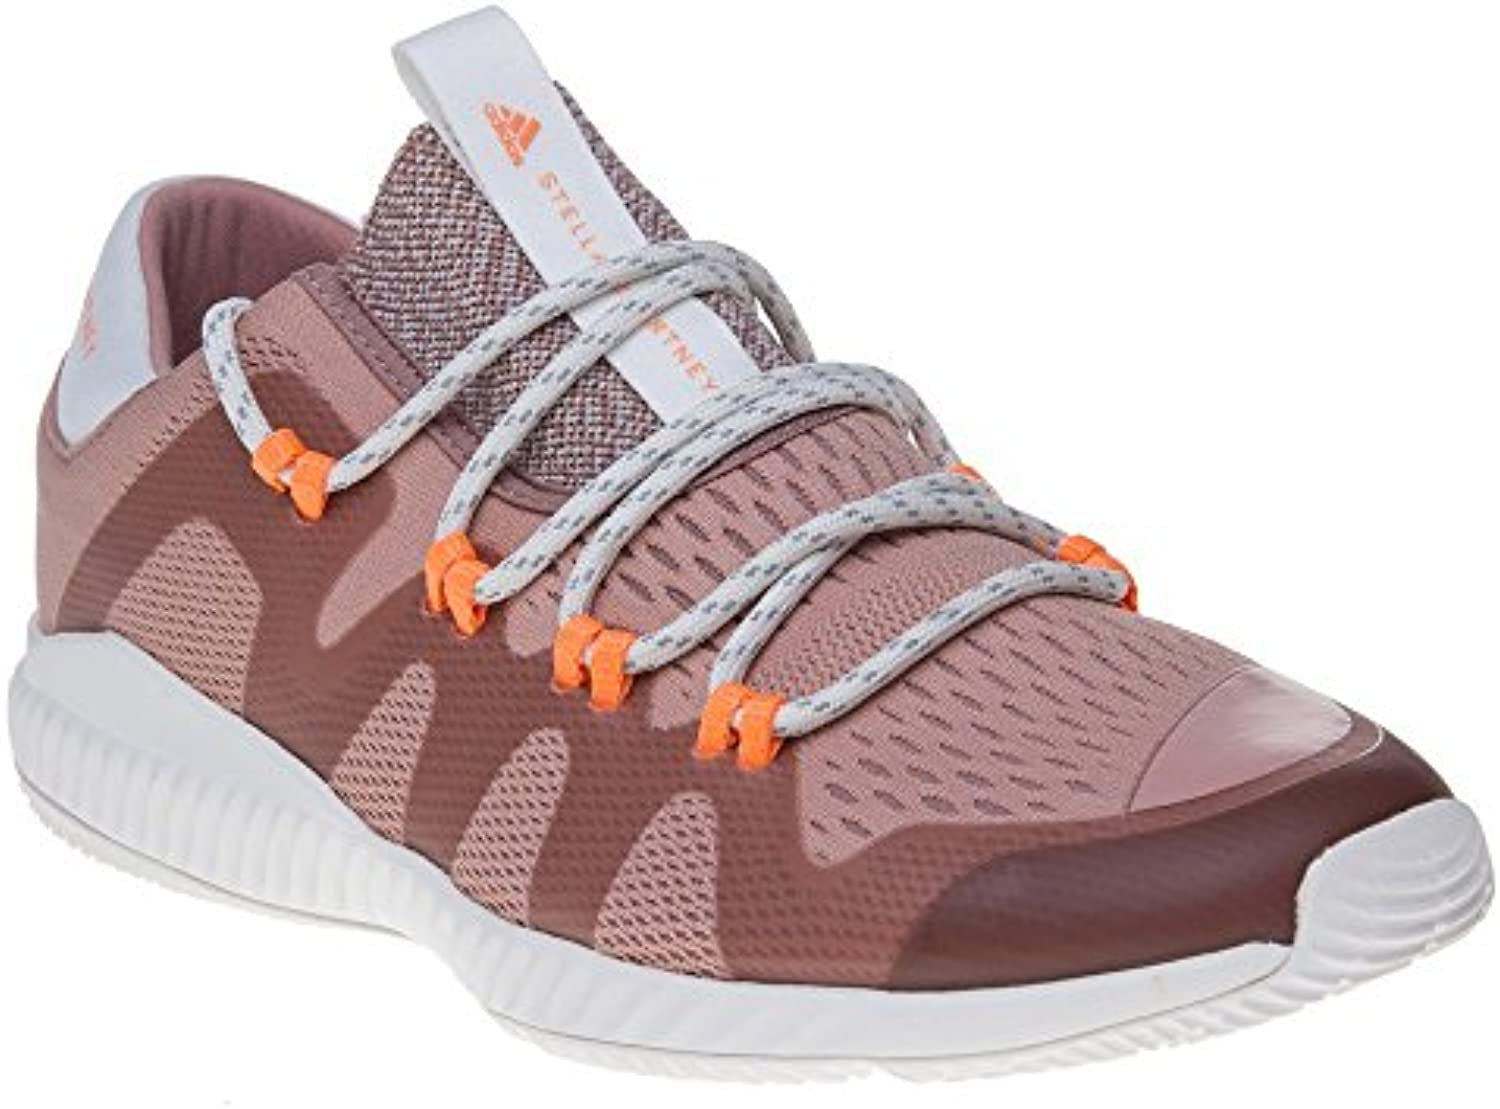 Gentleman/Lady adidas Crazytrain Pro, Women's Fitness Shoes quality trade Wholesale trade quality Quality and consumer first 4b1075